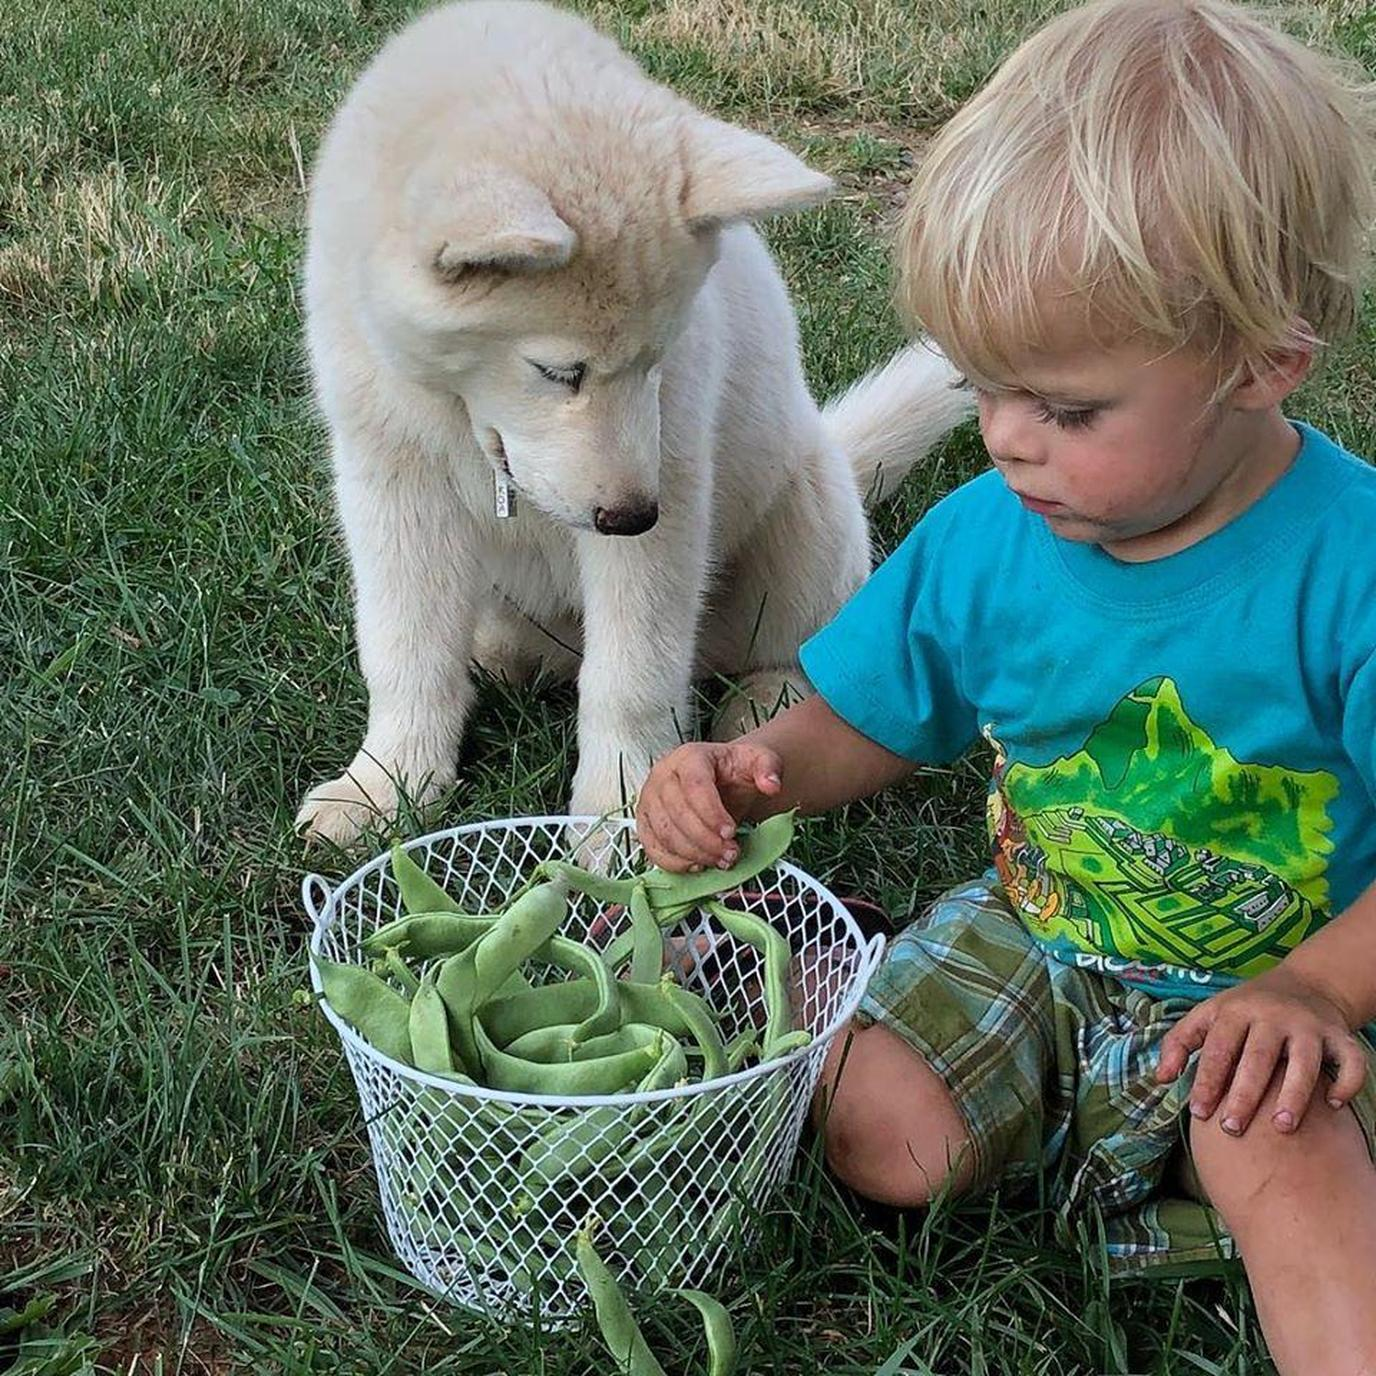 A dog and a child pick green beans together at a pet-friendly farm.